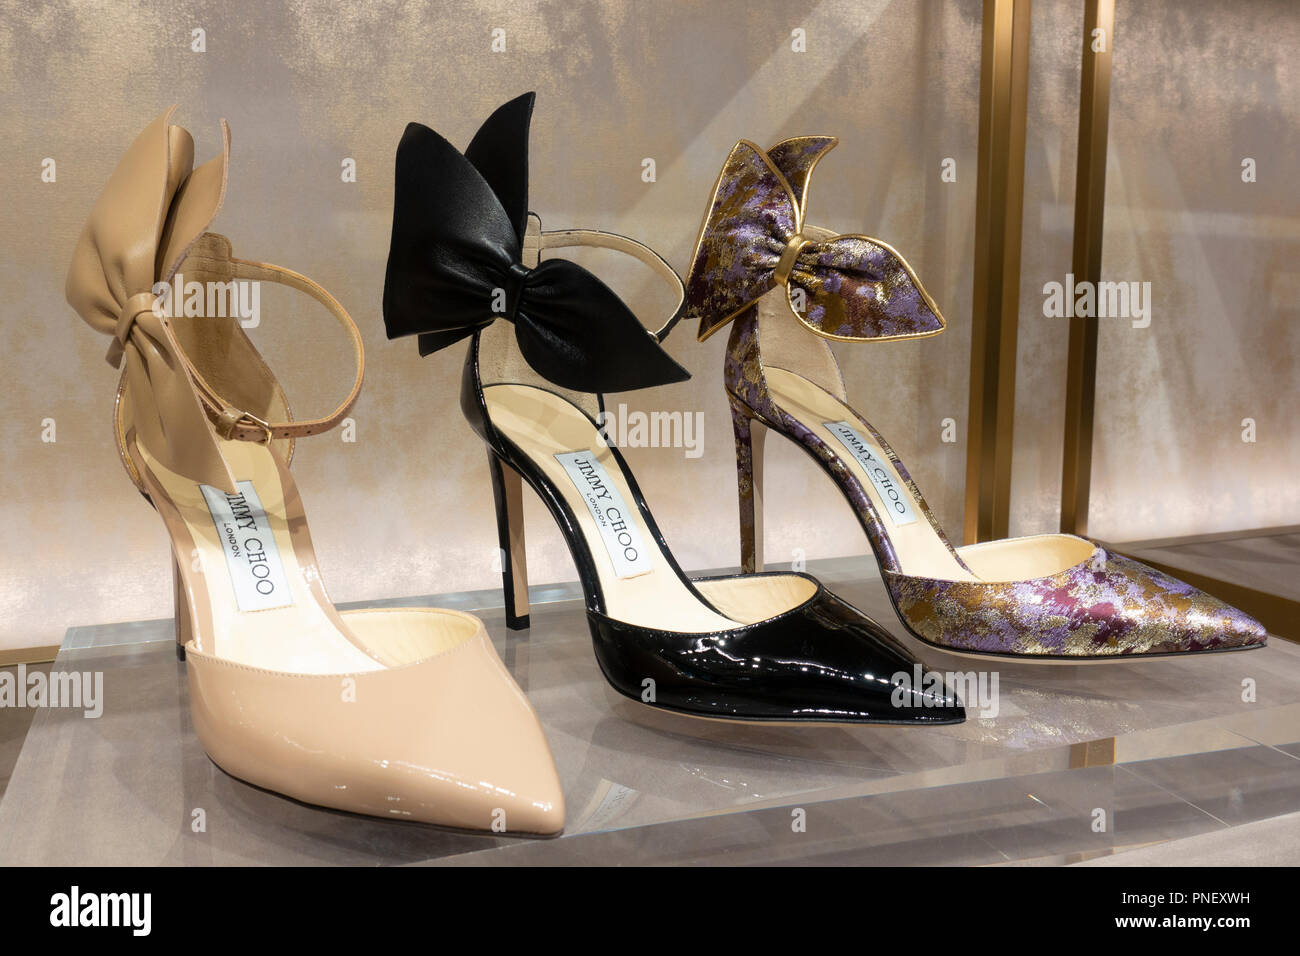 c2f0d980b65 Store Display Of Jimmy Choo Shoes Stock Photos   Store Display Of ...